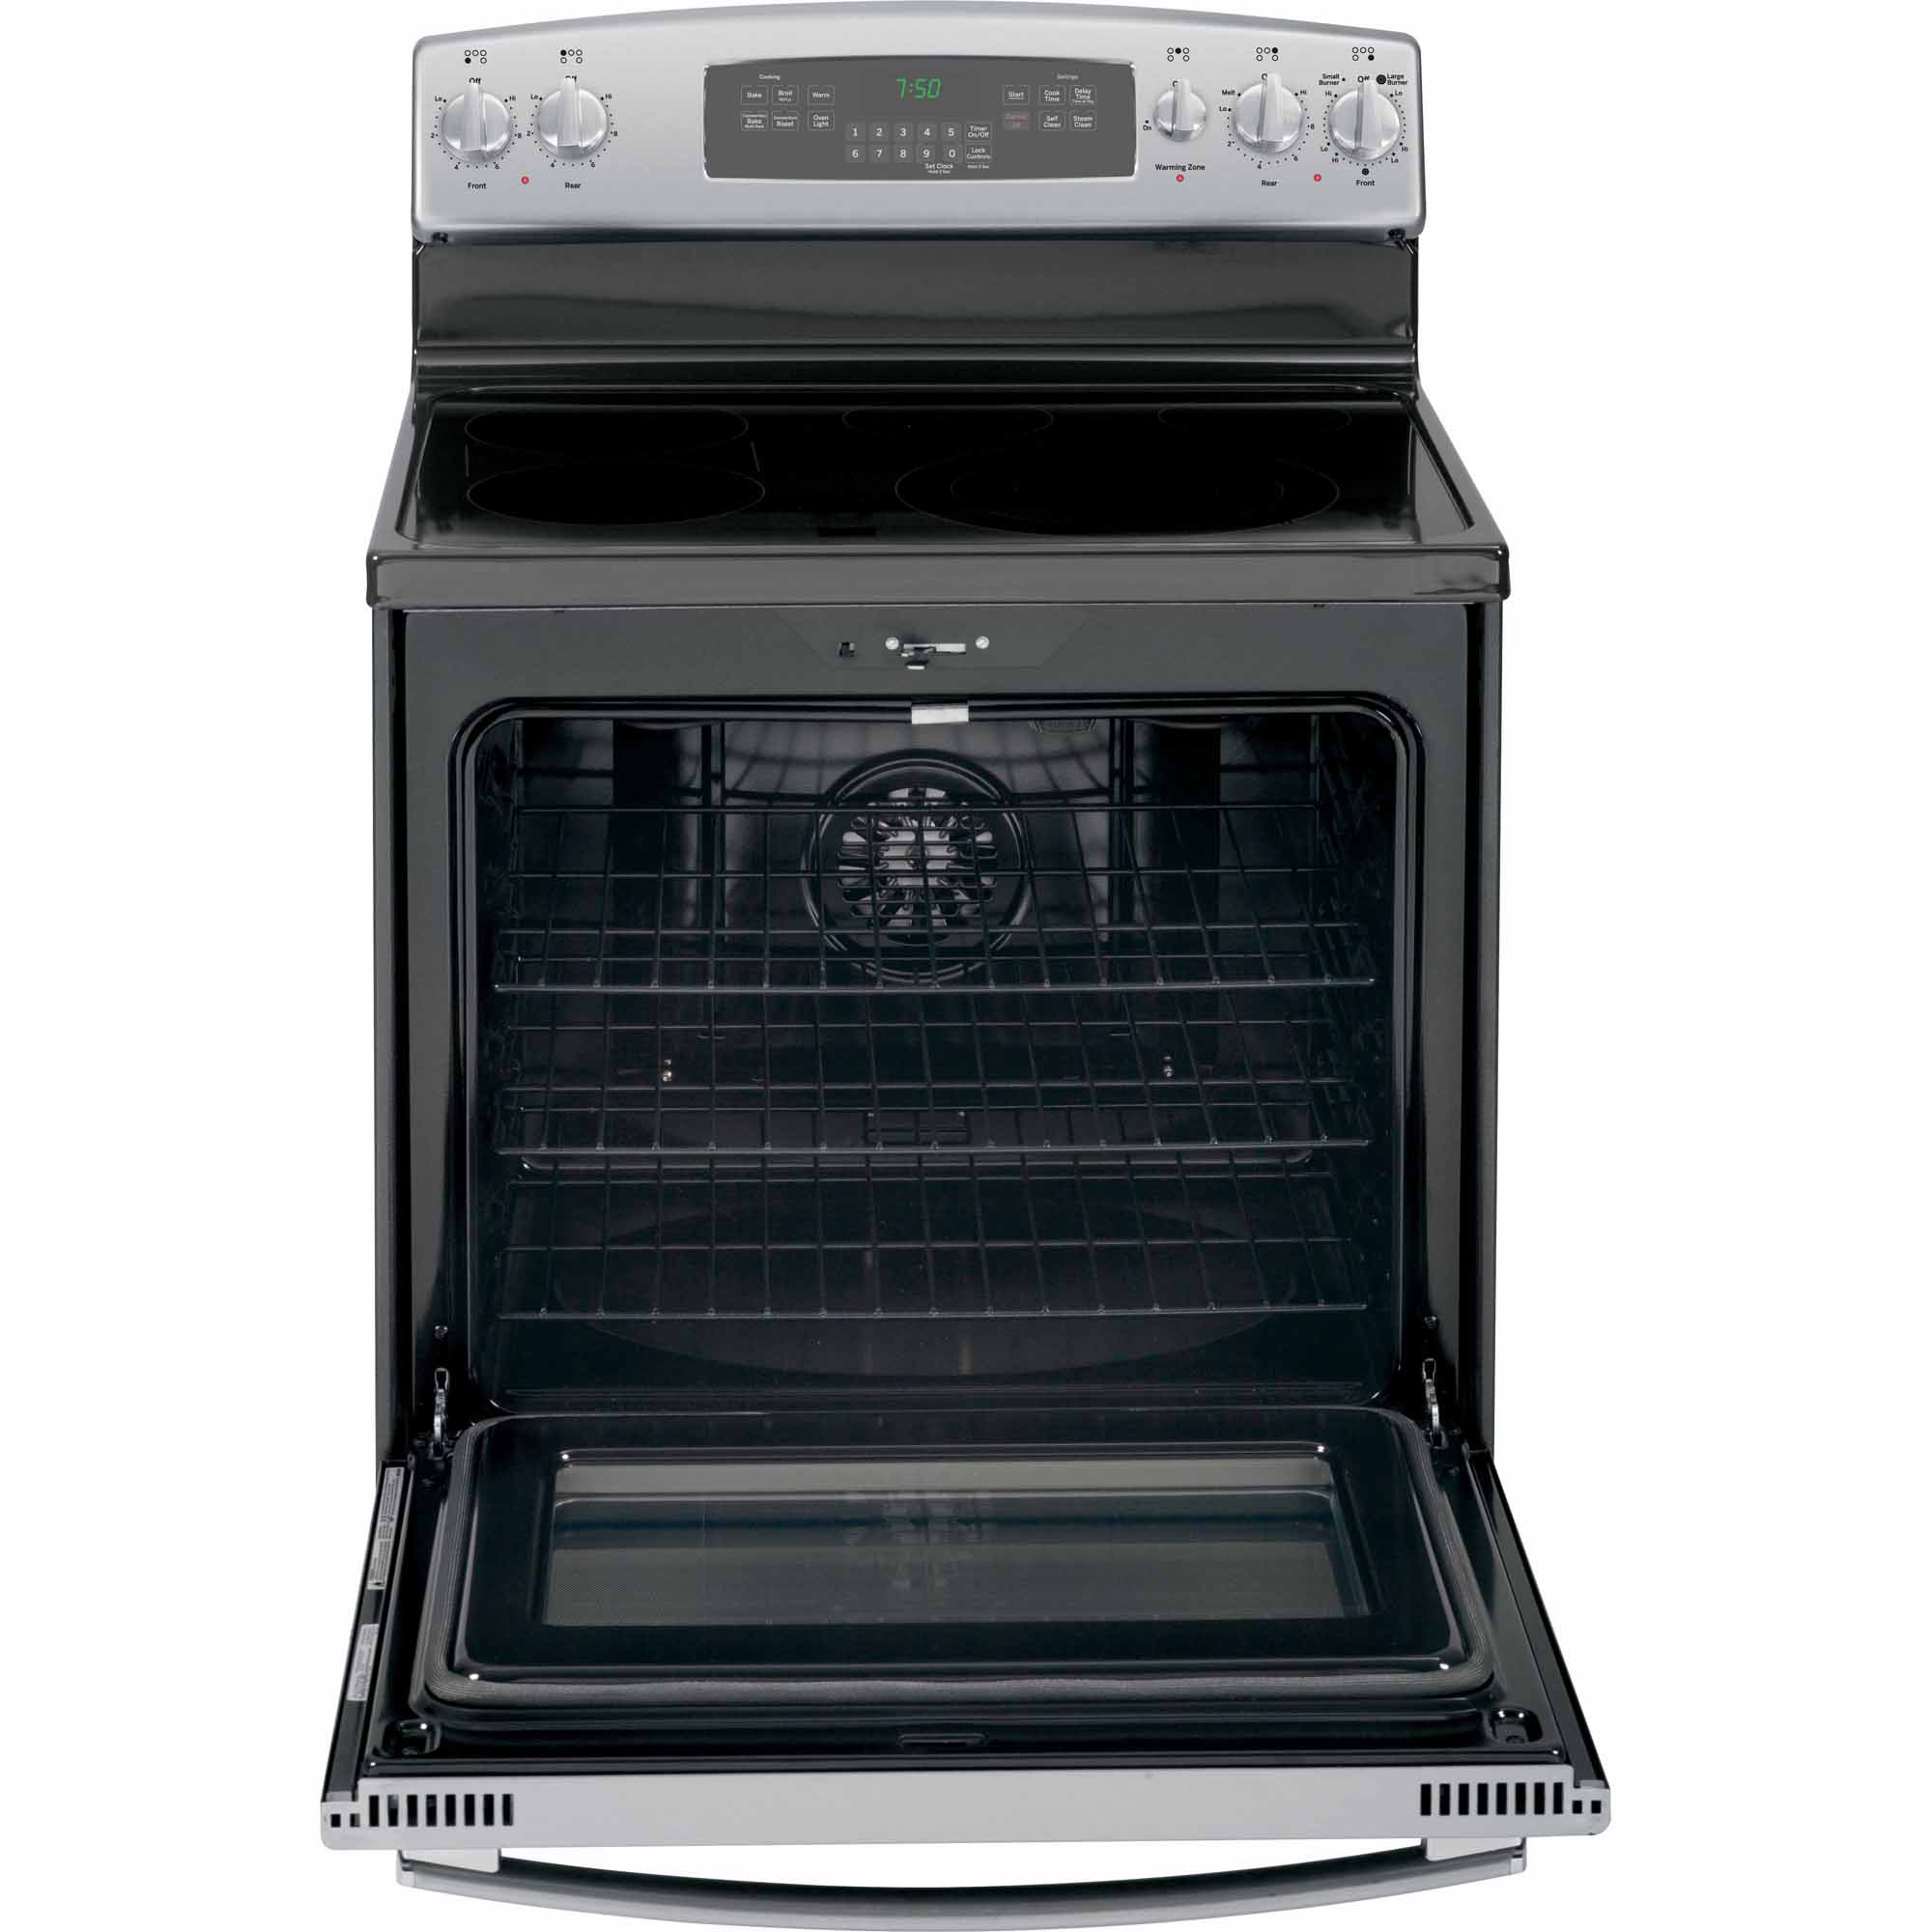 GE 5.3 cu. ft. Electric Range w/ True Convection - Stainless Steel